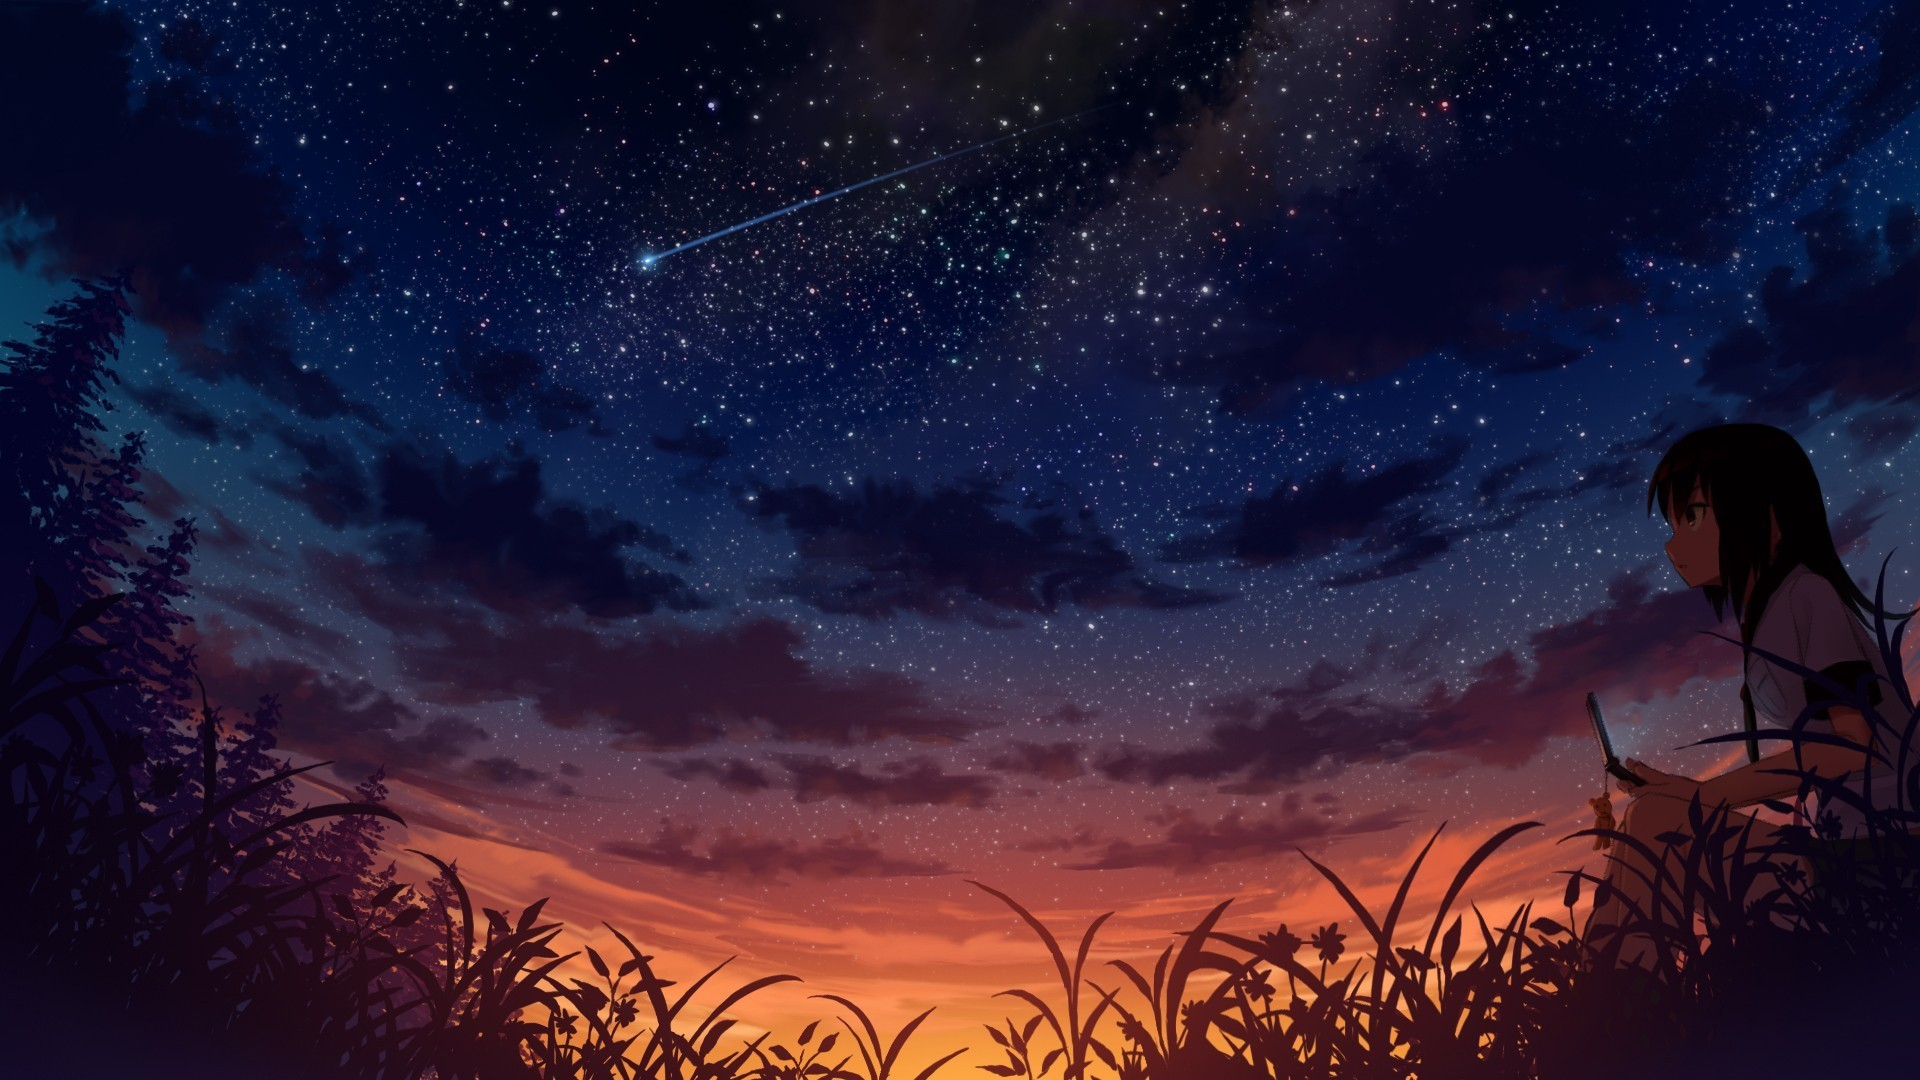 Anime Wallpaper Landscape Posted By Zoey Mercado